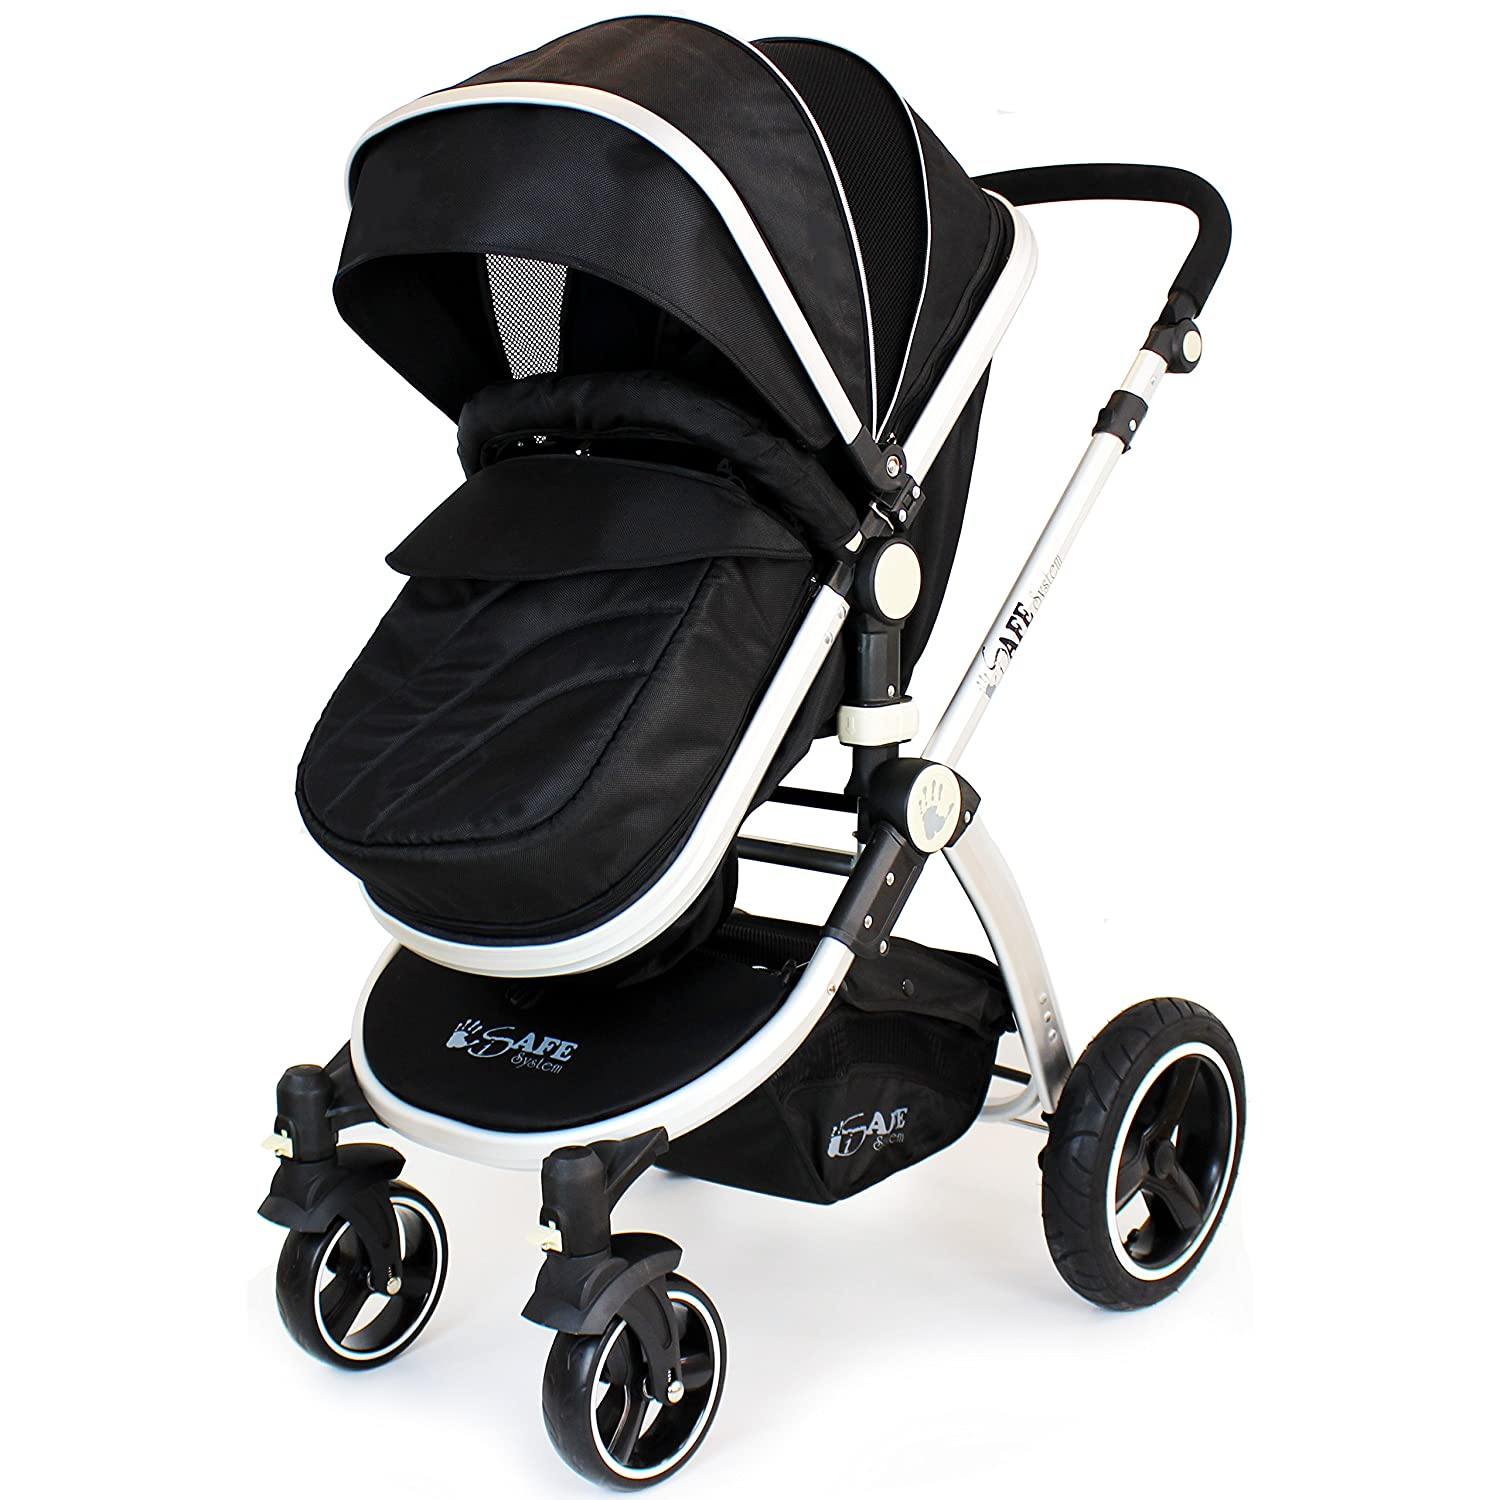 iSafe 2 in 1 Baby Pram System